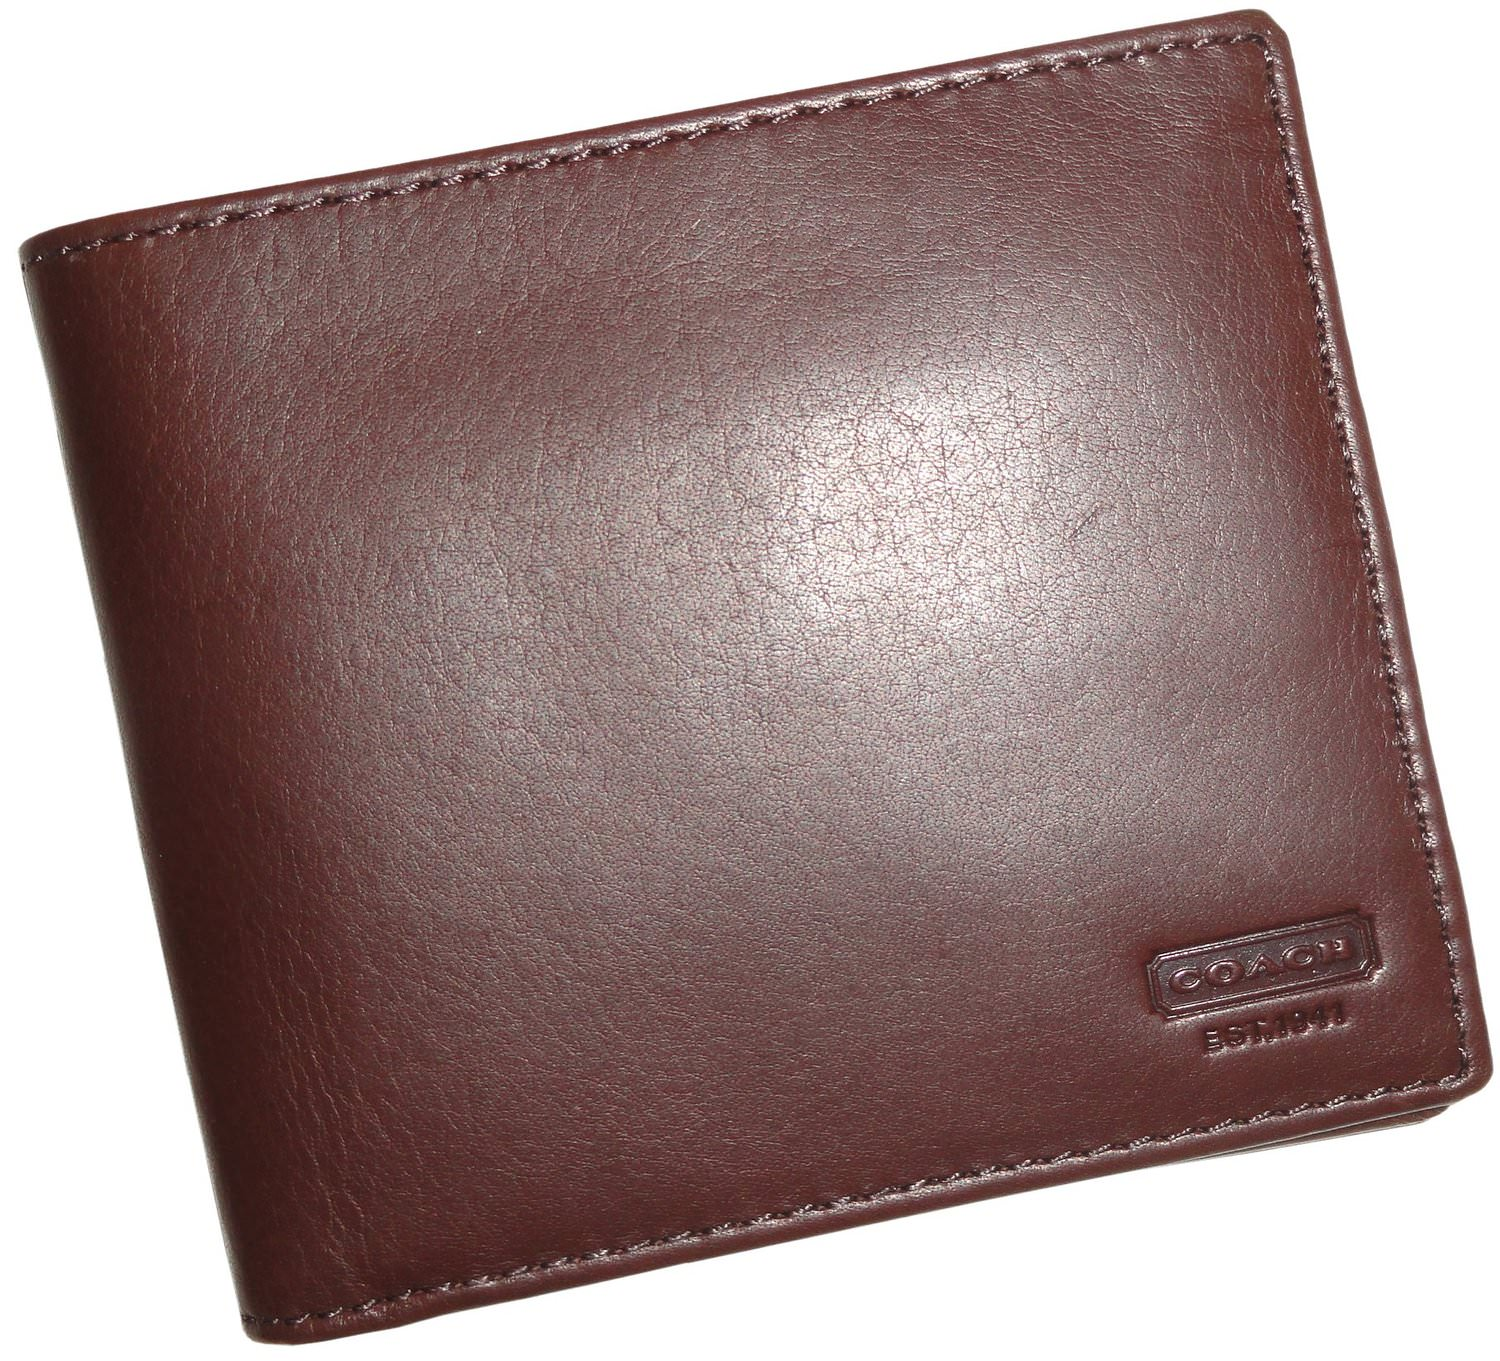 26 Coach Wallet Designs Ideas For Men Design Trends